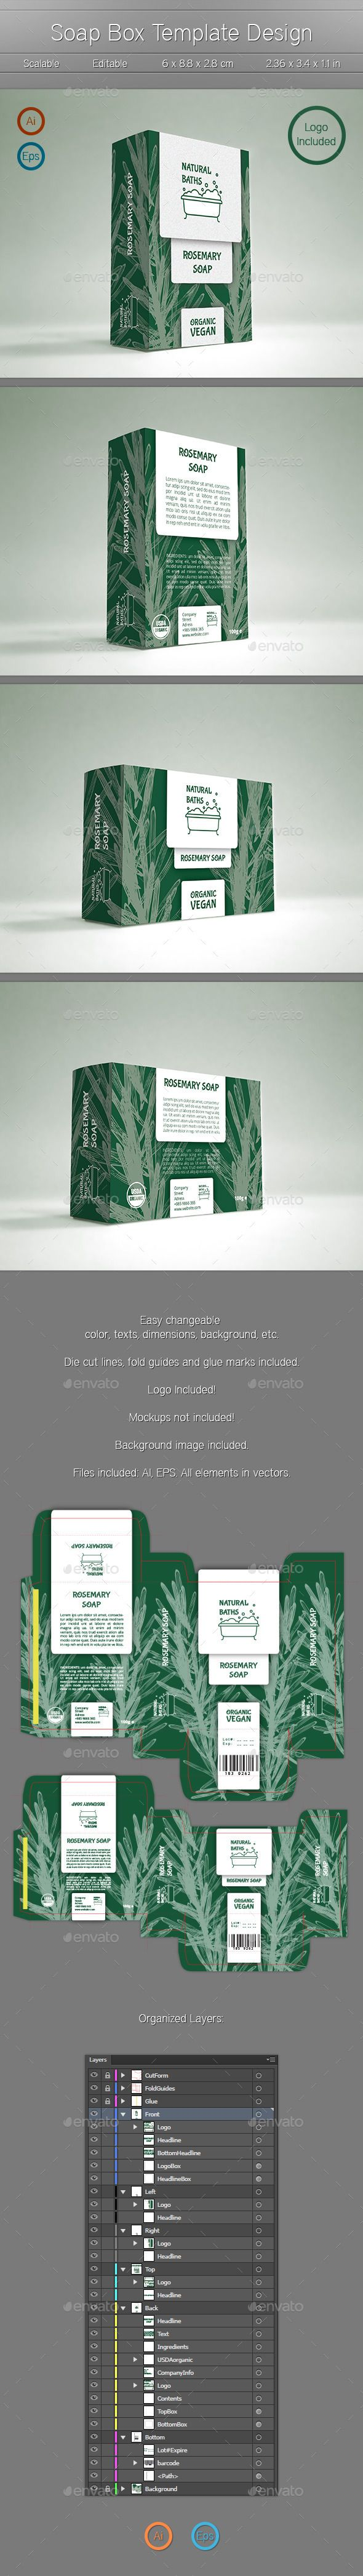 1000 images about premium packaging templates on pinterest for Soap box design template